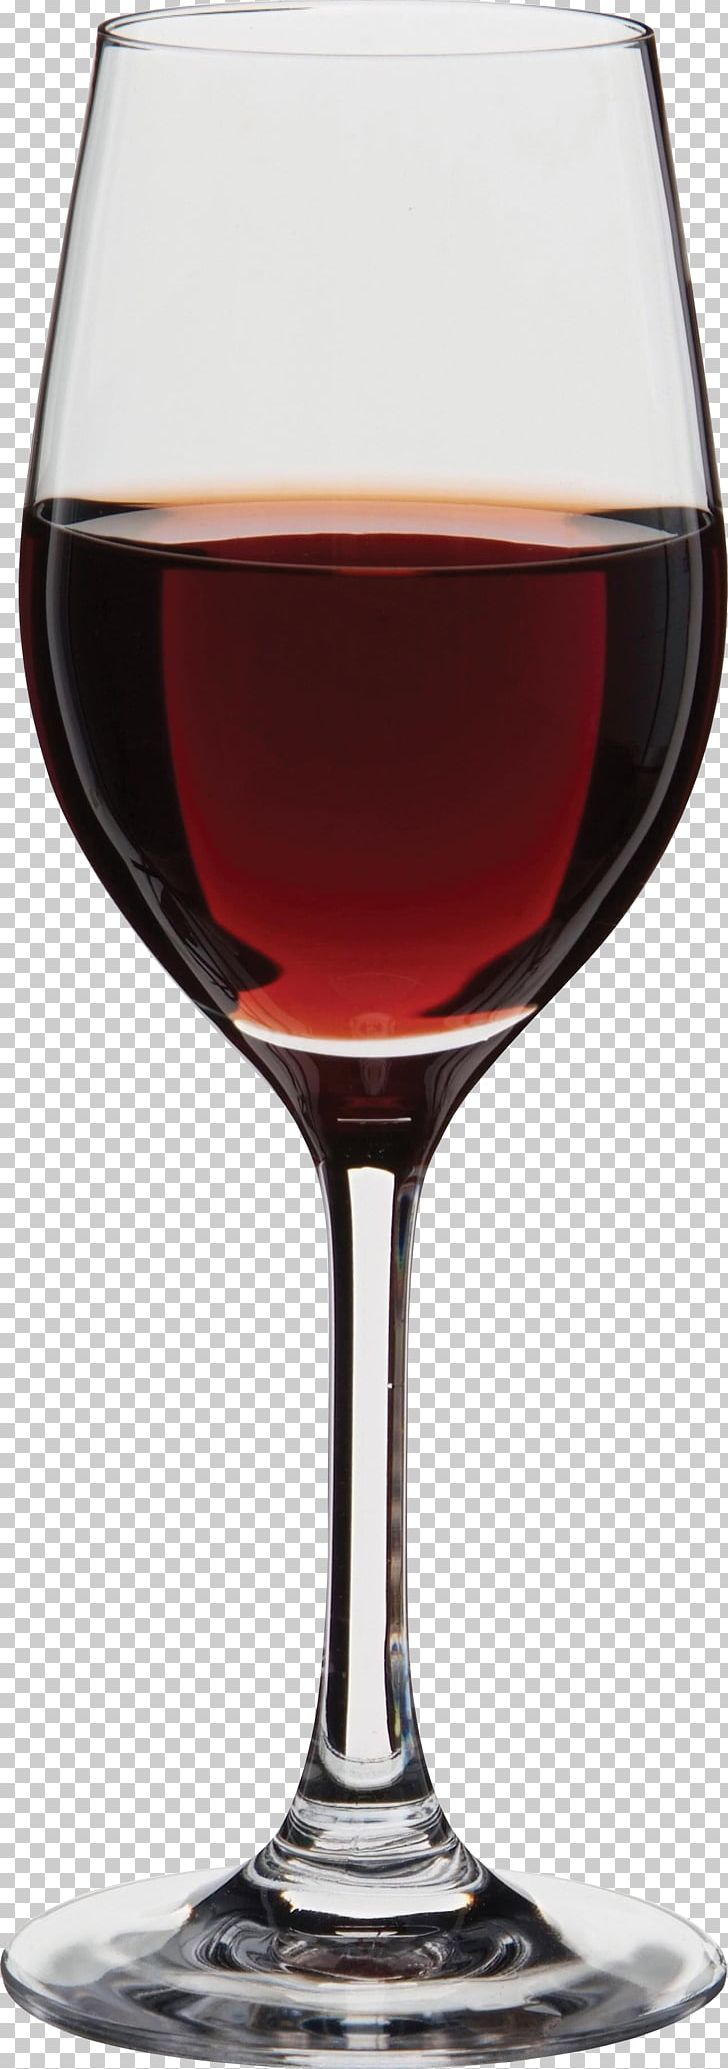 Red Wine Port Wine Wine Glass Fortified Wine PNG, Clipart, Champagne Glass, Champagne Stemware, Cognac, Dartington Crystal, Drink Free PNG Download